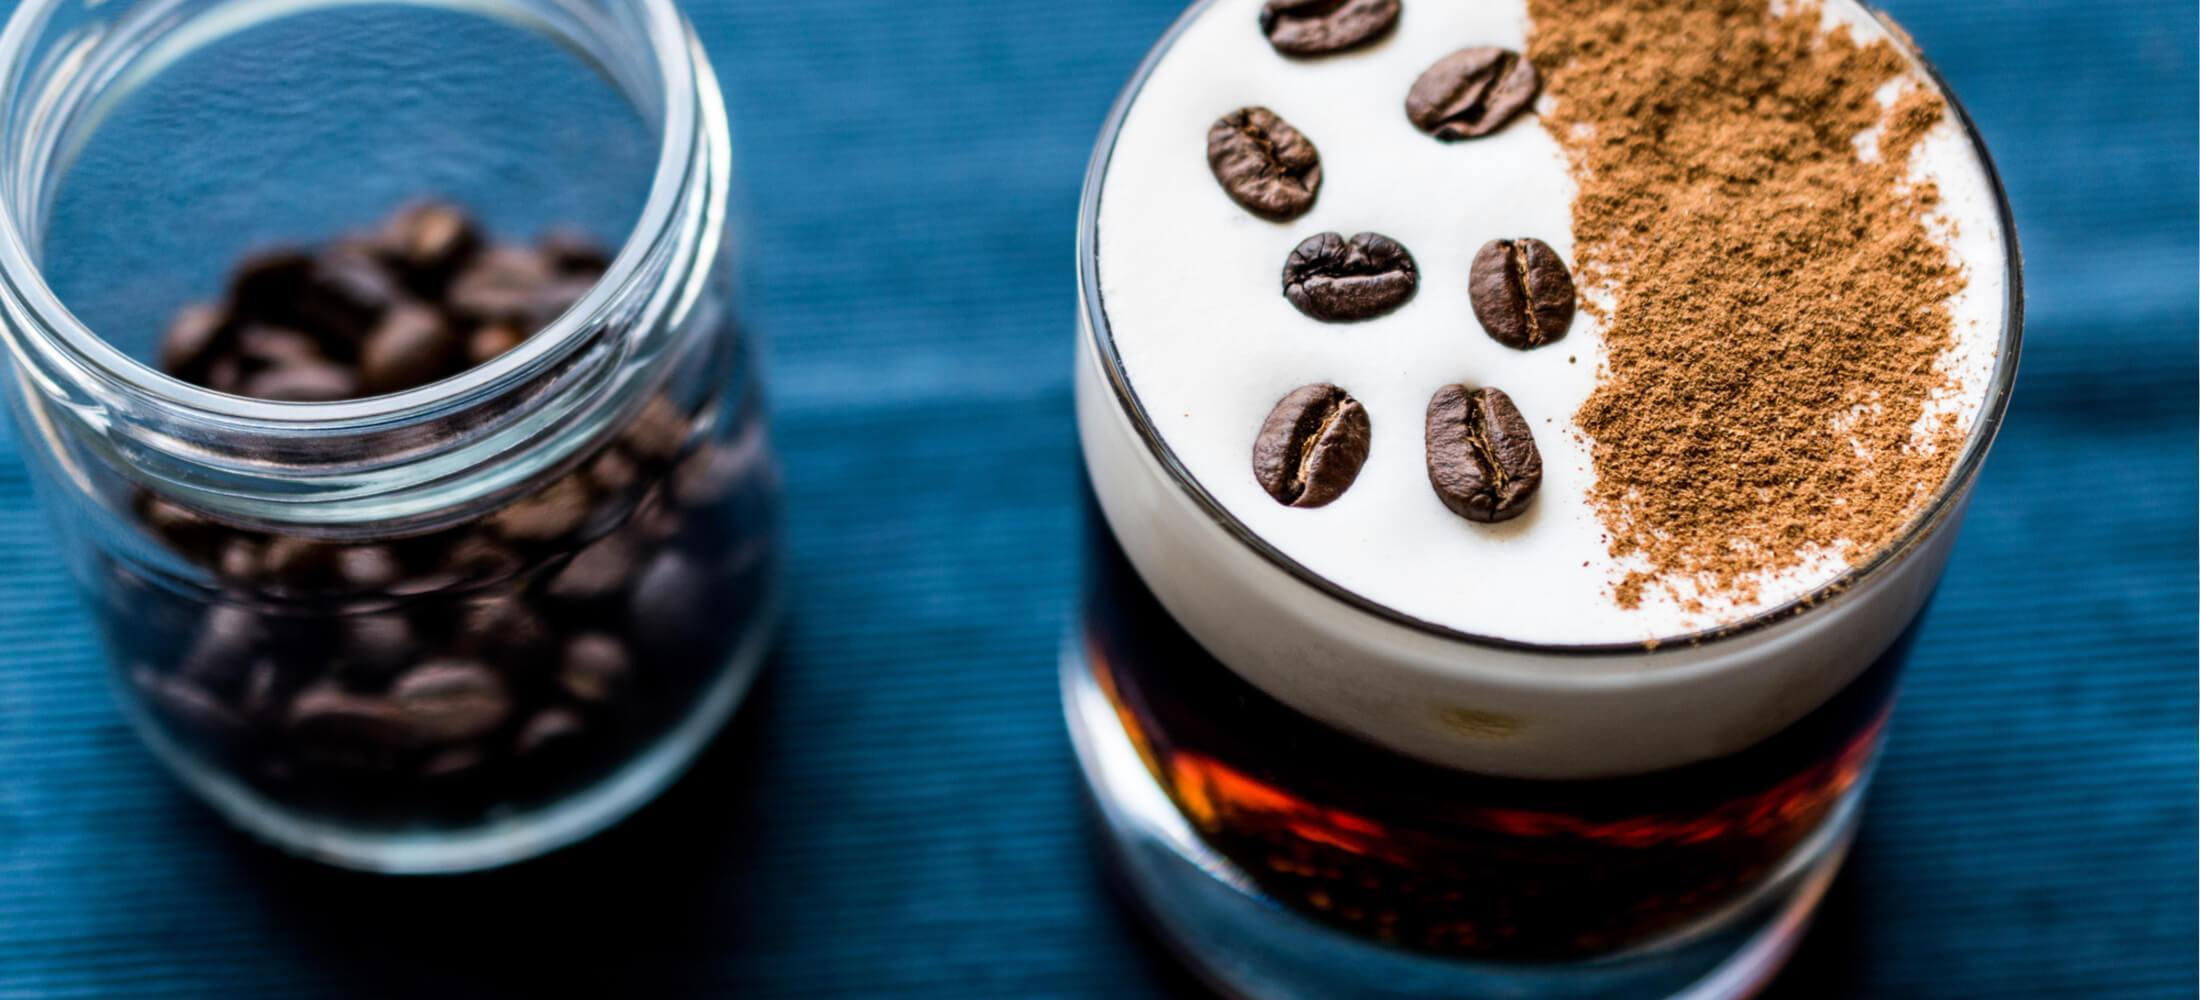 Liven Up Your Friday Night with These Coffee Cocktail Recipes